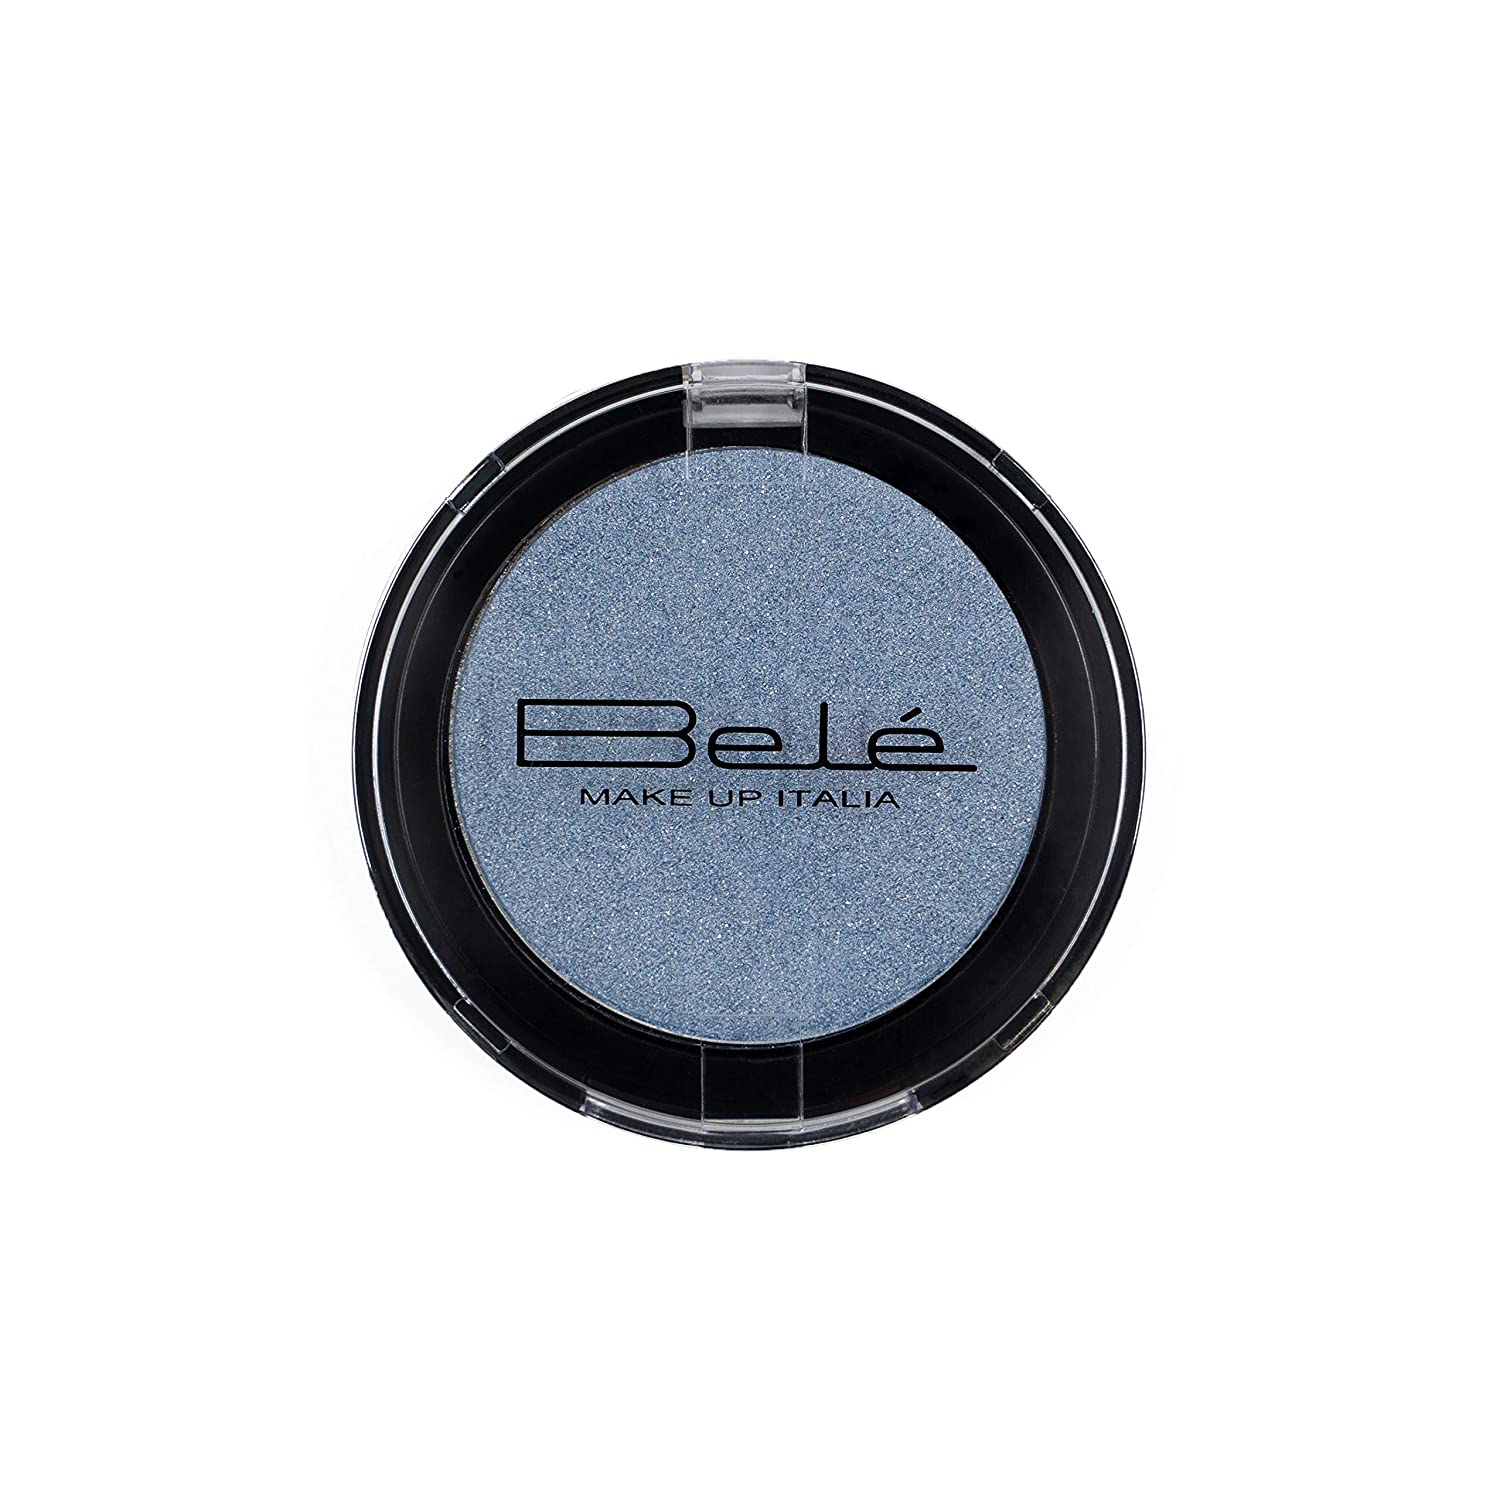 2021 spring and summer new Belé MakeUp Italia b.One Eyeshadow Max 80% OFF Blue - Glitter #51 Baby